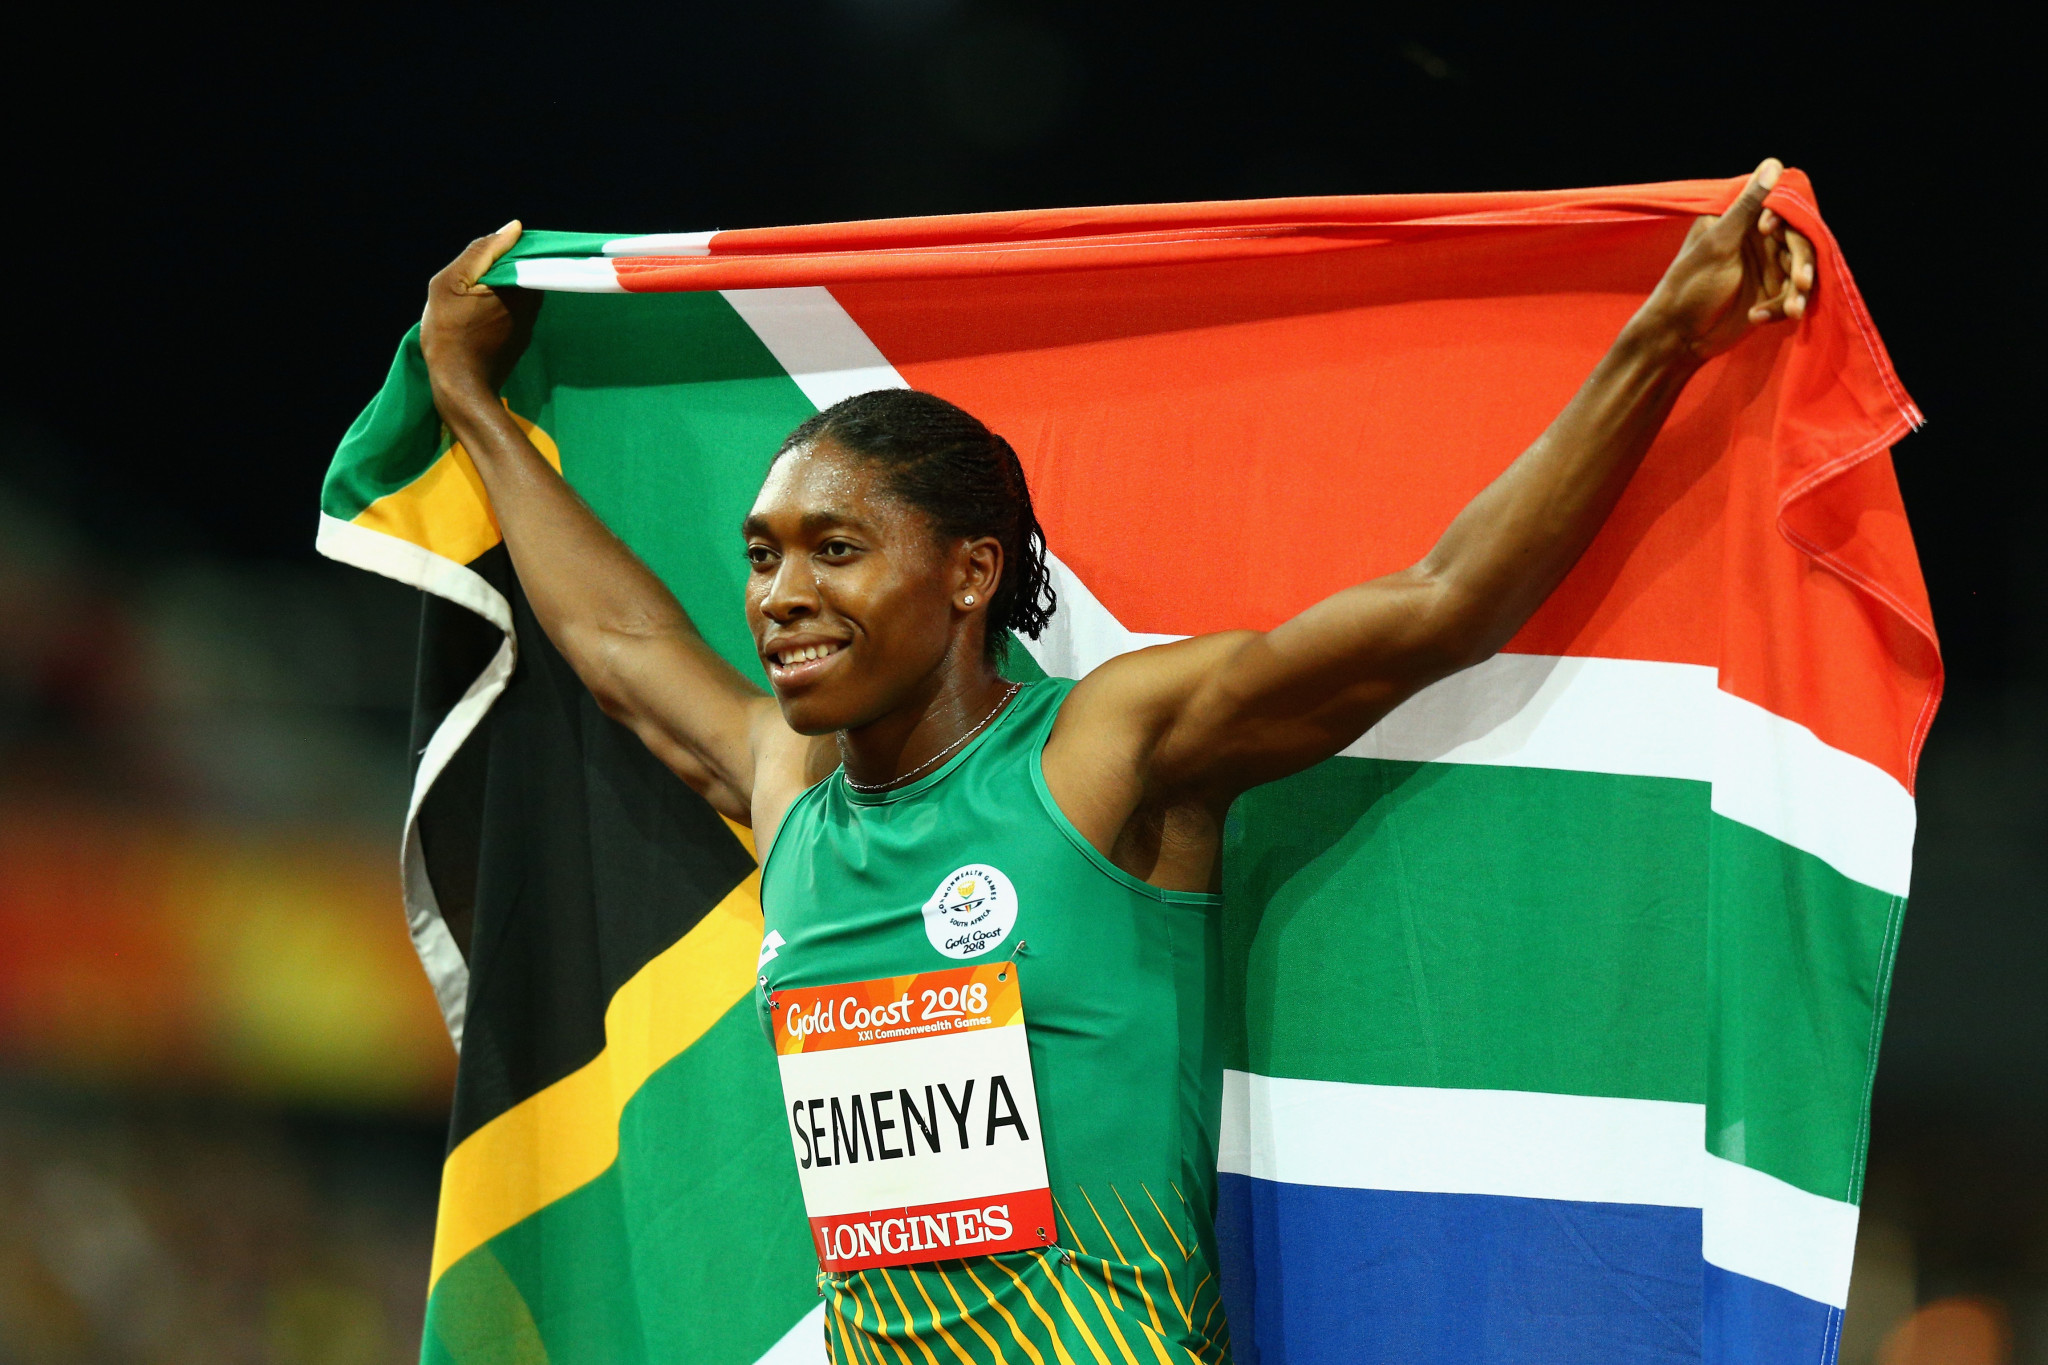 Limpopo Sports Dept condemns IAAF's new female classification rule